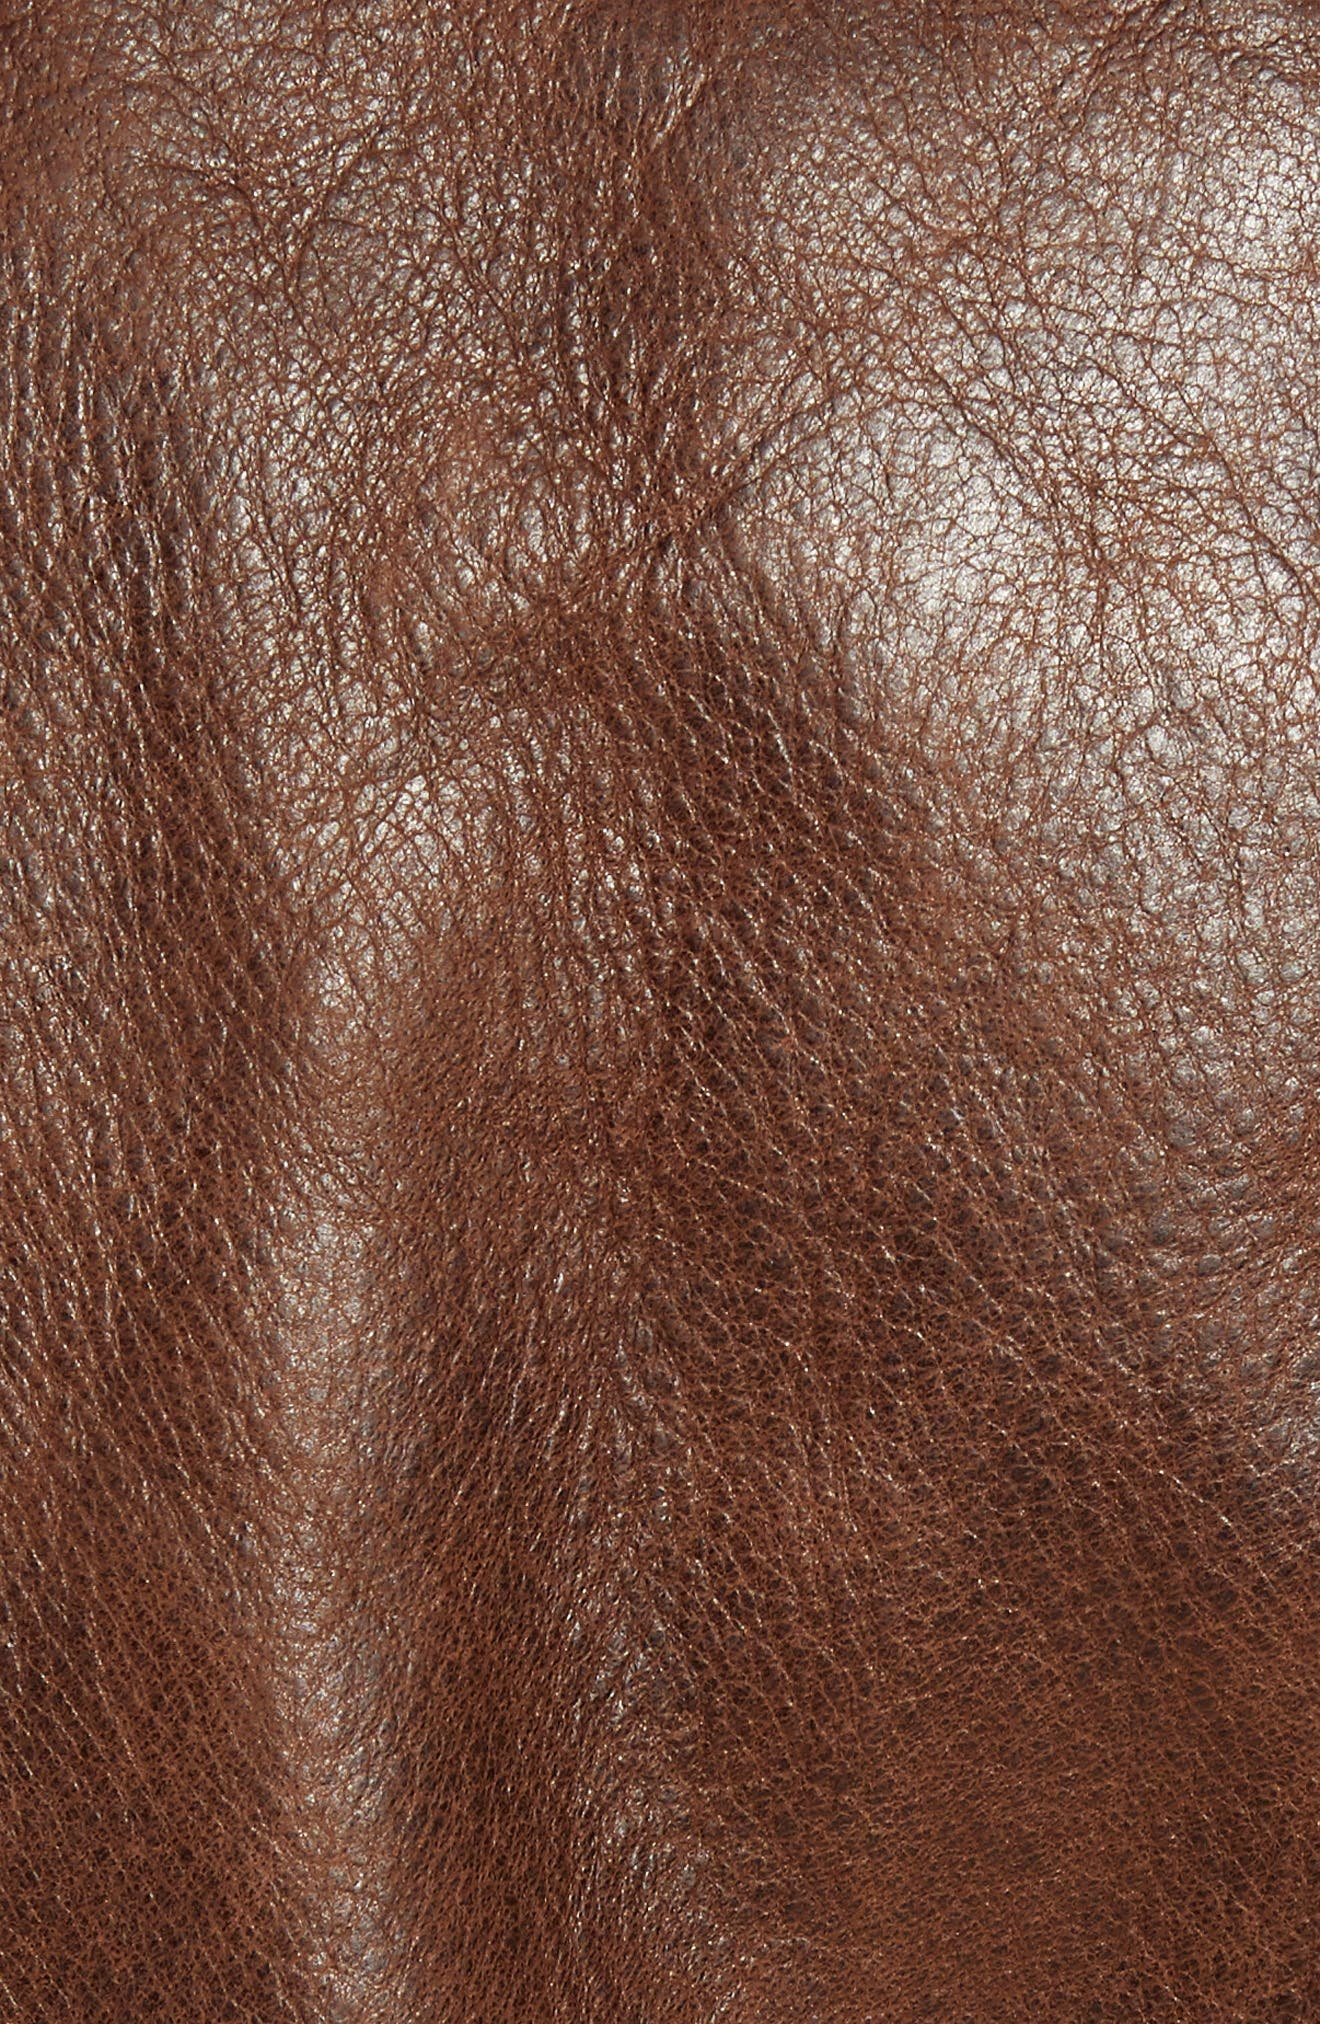 Waxy Naked Buffalo Leather Delivery Jacket,                             Alternate thumbnail 7, color,                             200